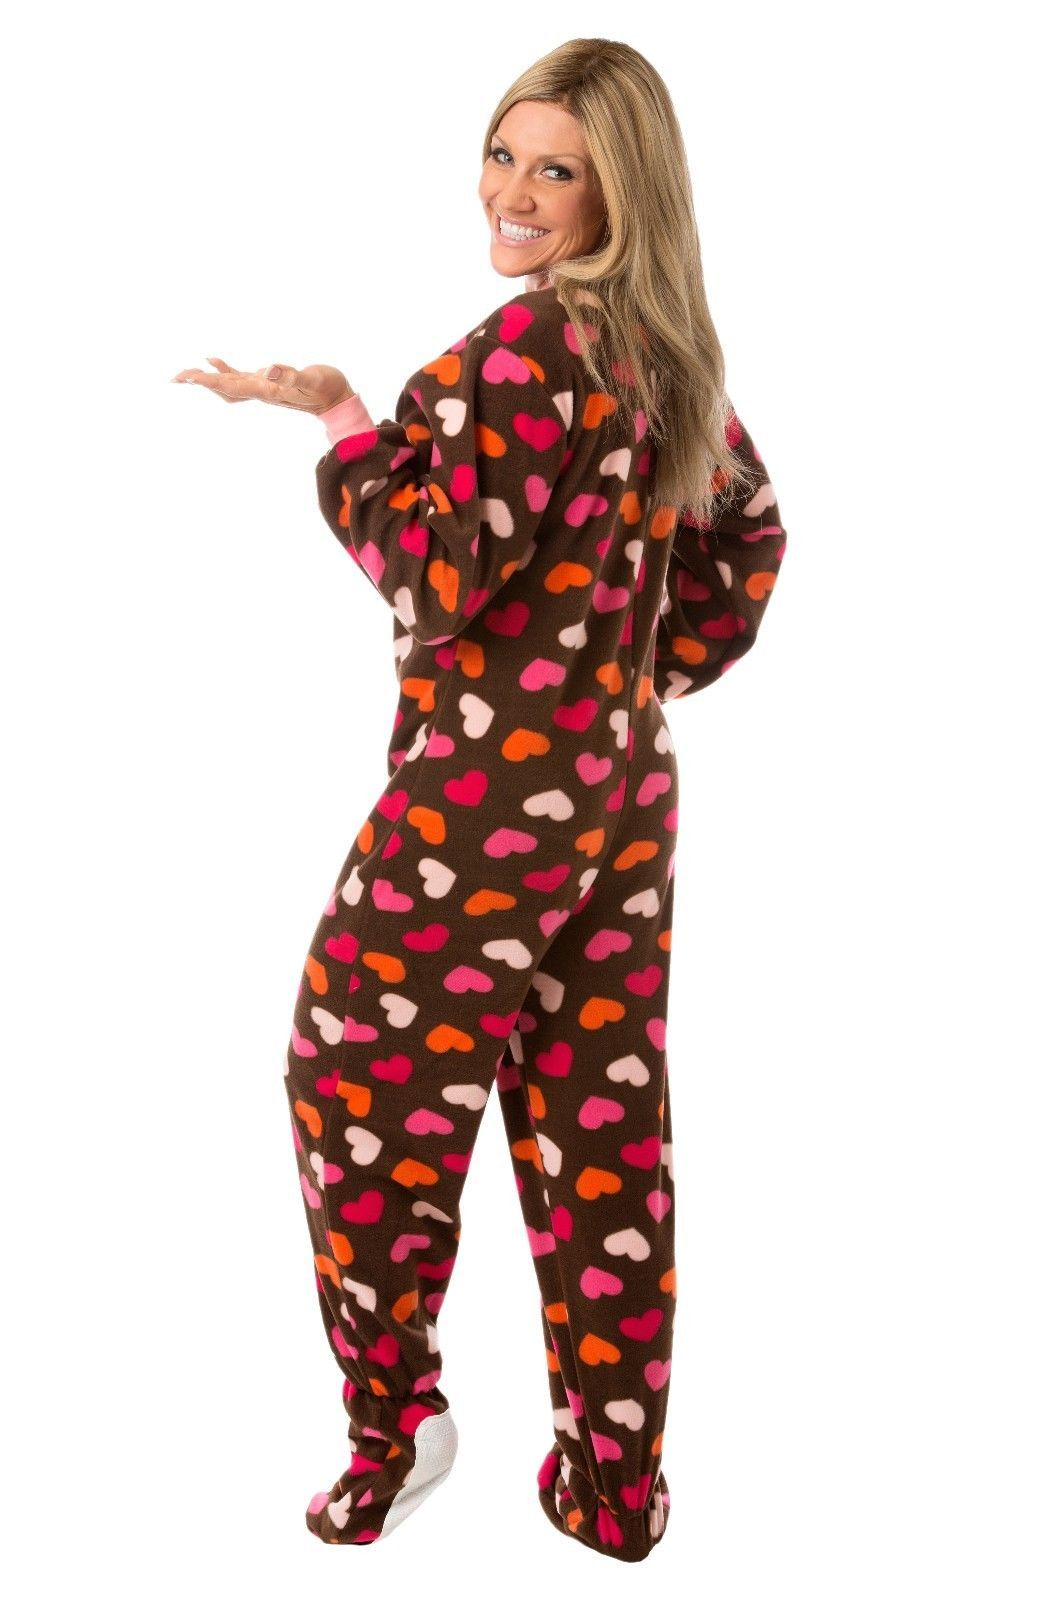 And remember, our onesie pajamas for kids come in all sizes, so mom and dad can get in on the fun, too! So take a look around; we're certain you'll find the perfect onesie pajamas for your kids. They're the coziest, snuggliest, silliest onesie pajamas online, perfect for the sleepiest members of your family.